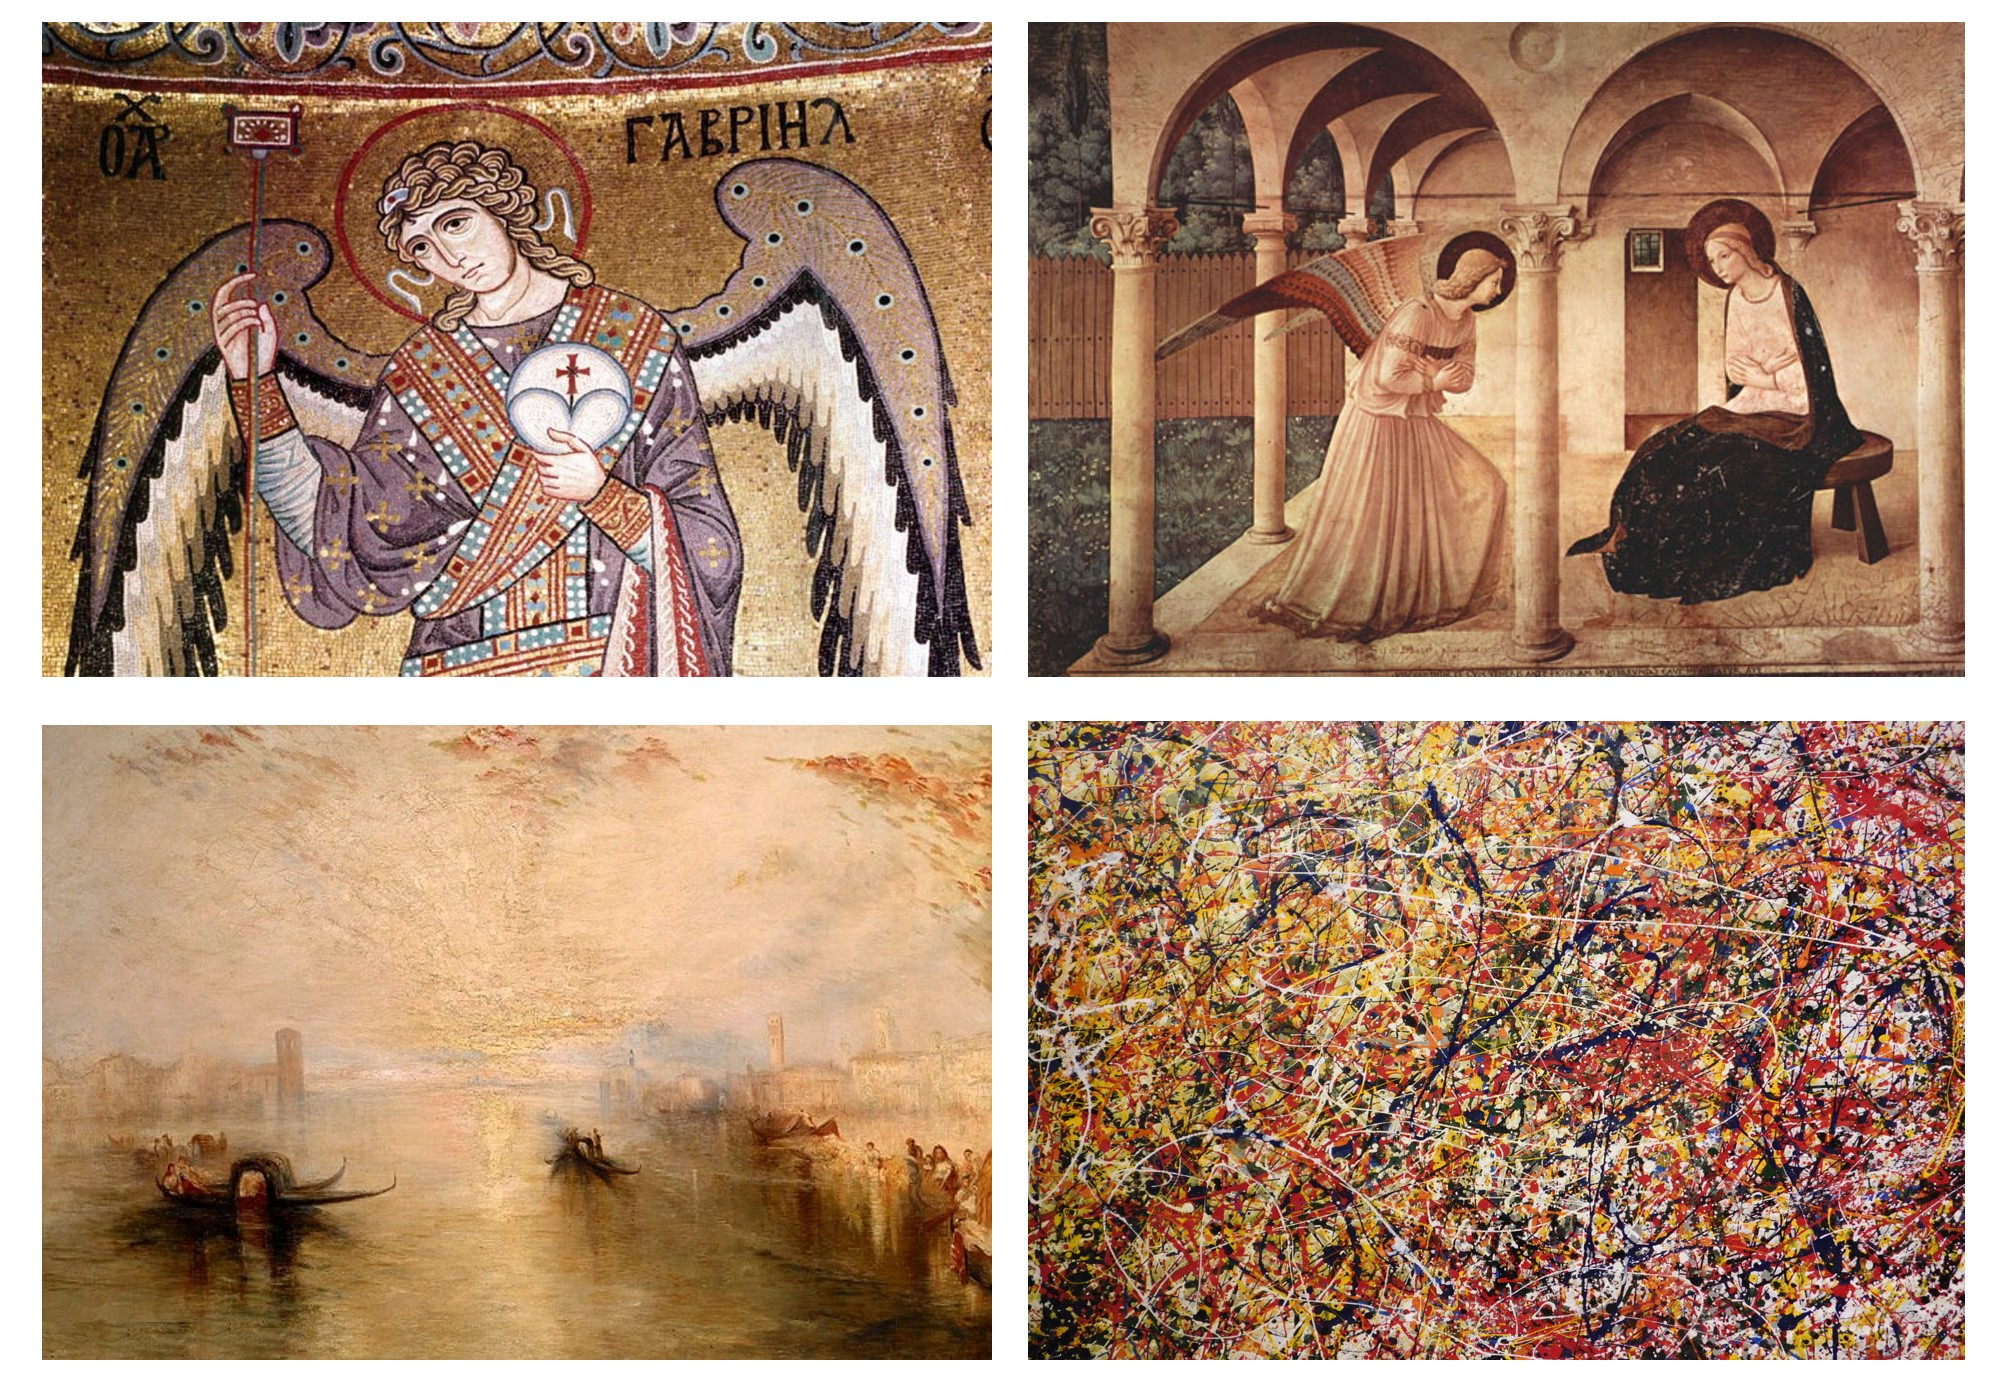 SYMBOLIC, NARRATIVE, ILLUSORY AND GESTURAL (The range of expression in western painting from Byzantium, upper left to Pollock lower right)